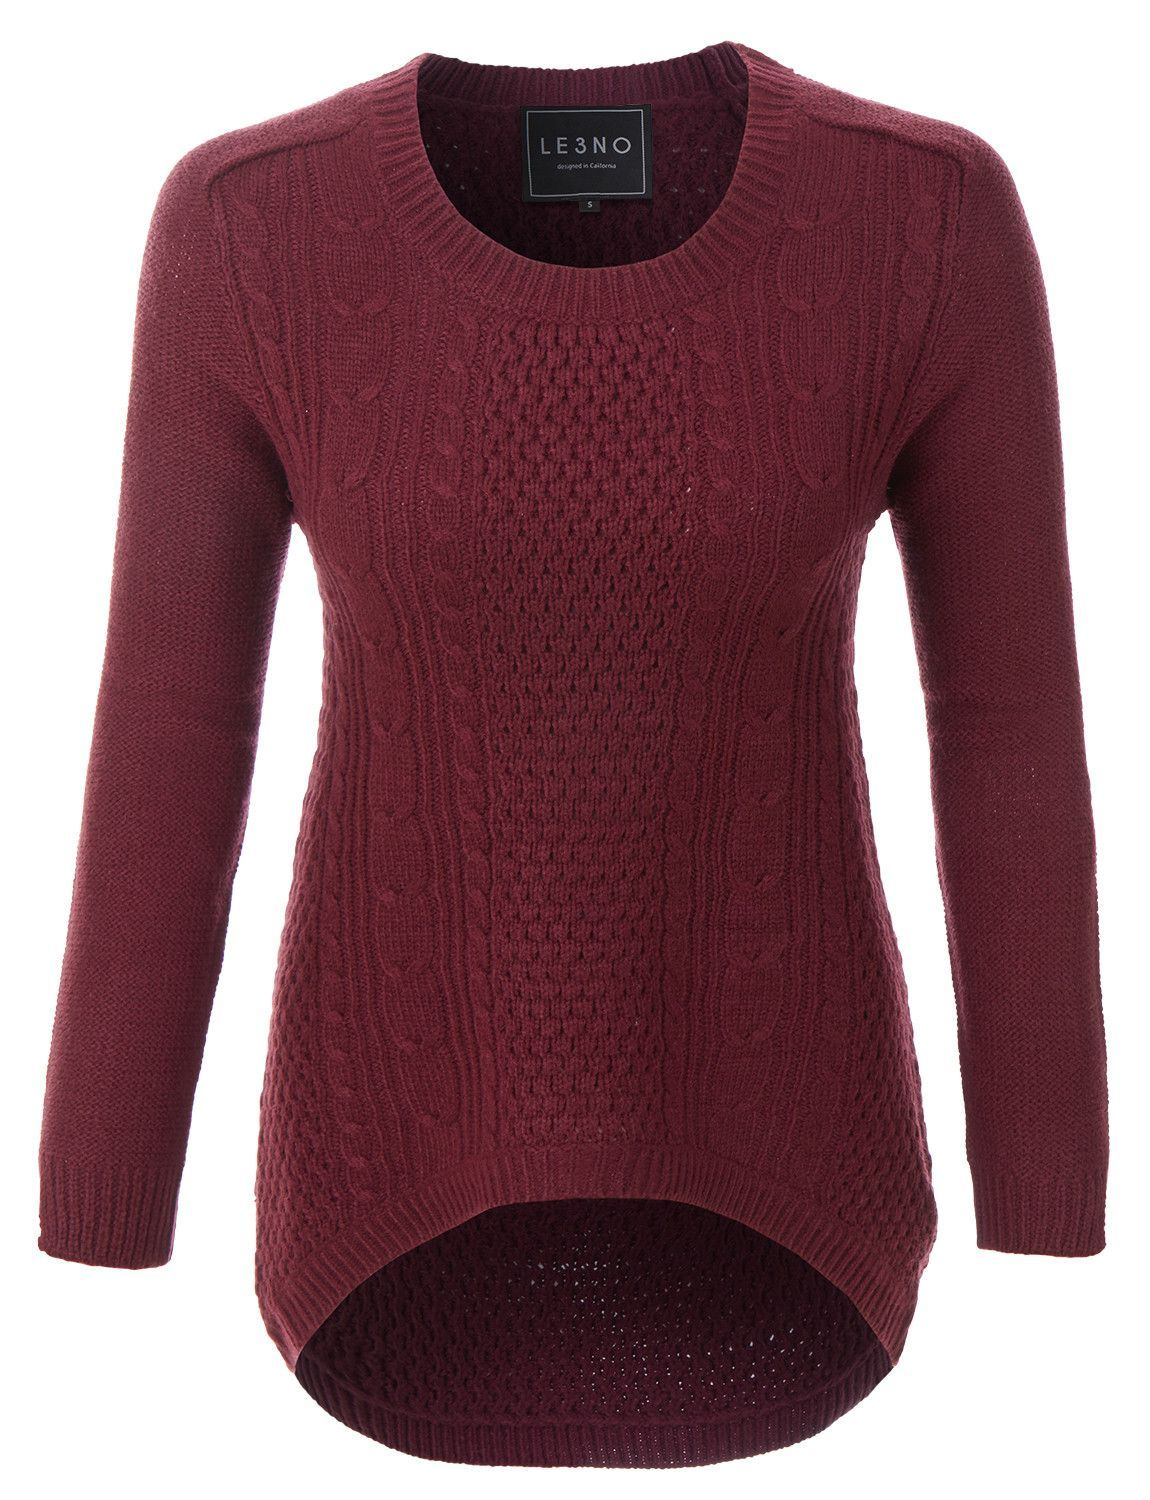 Womens Oversized Cozy Long Sleeve Soft Knit Pullover Sweater ...